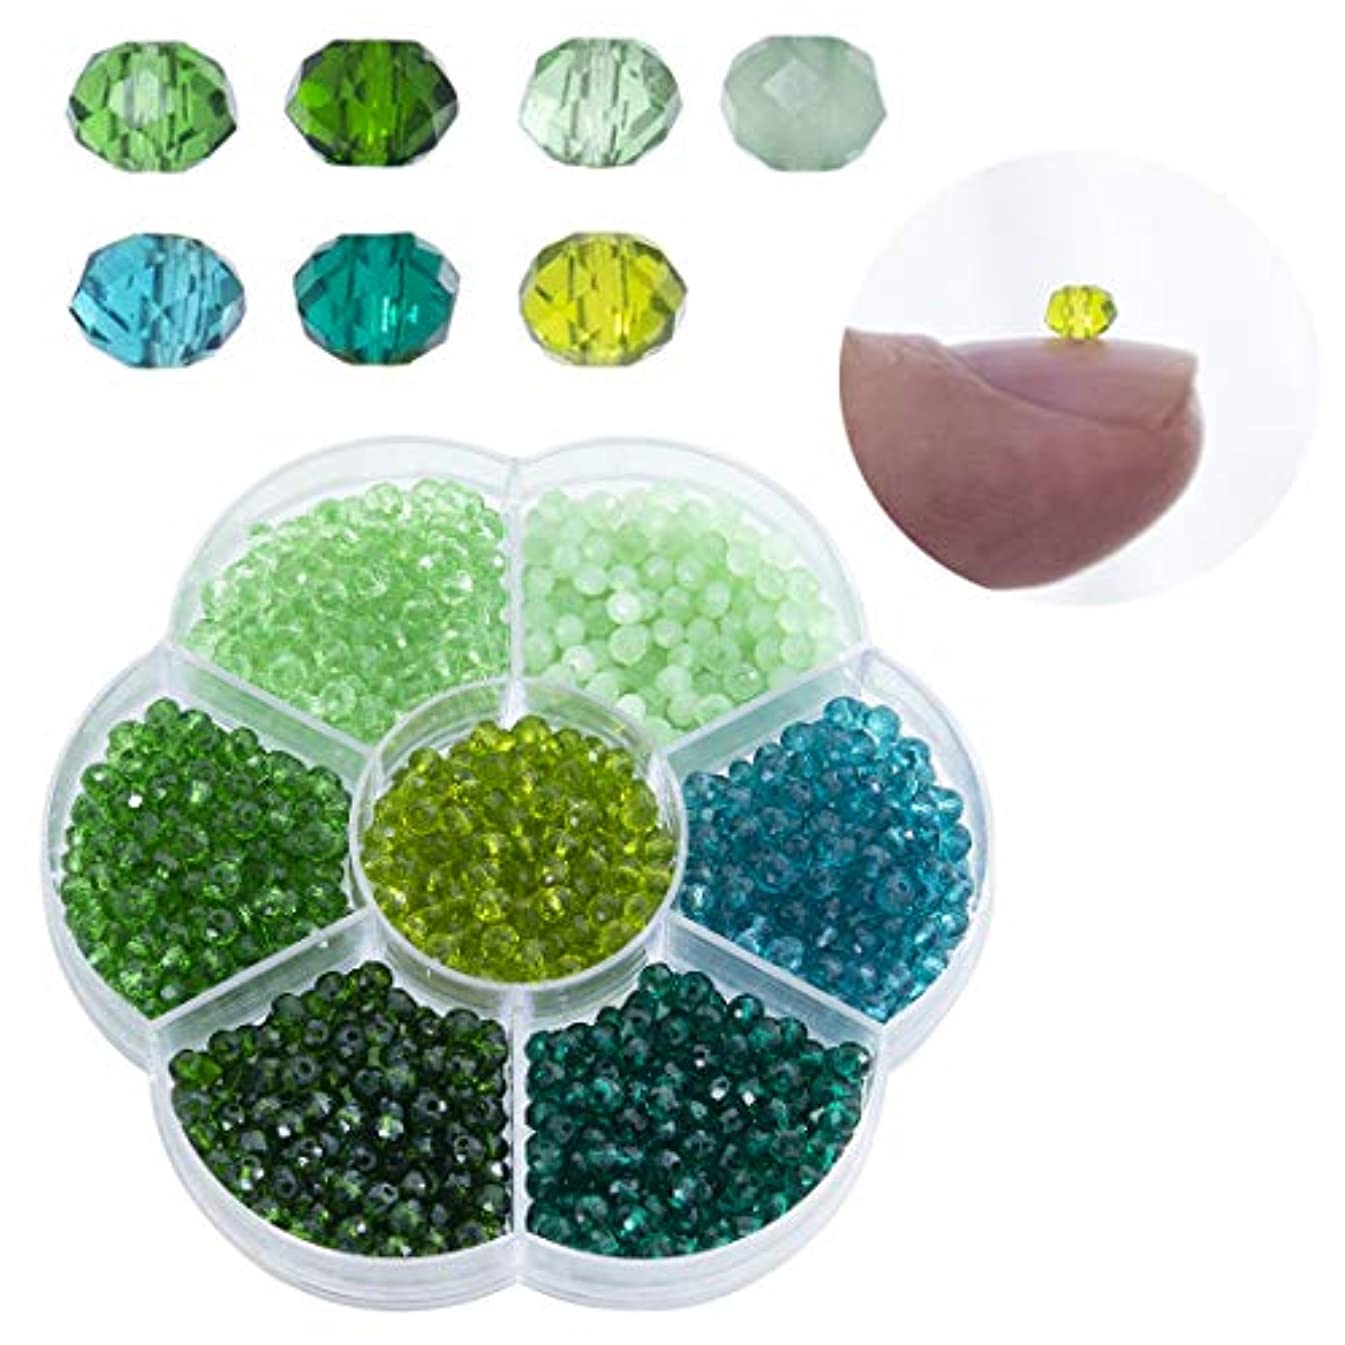 Lot 1050pcs Glass Bicone Beads-Wholesale 4mm Bicone Shaped Crystal Faceted Beads Jewelry Making Supply for DIY Beading Projects, Bracelets, Necklaces with Container Box(Style1)